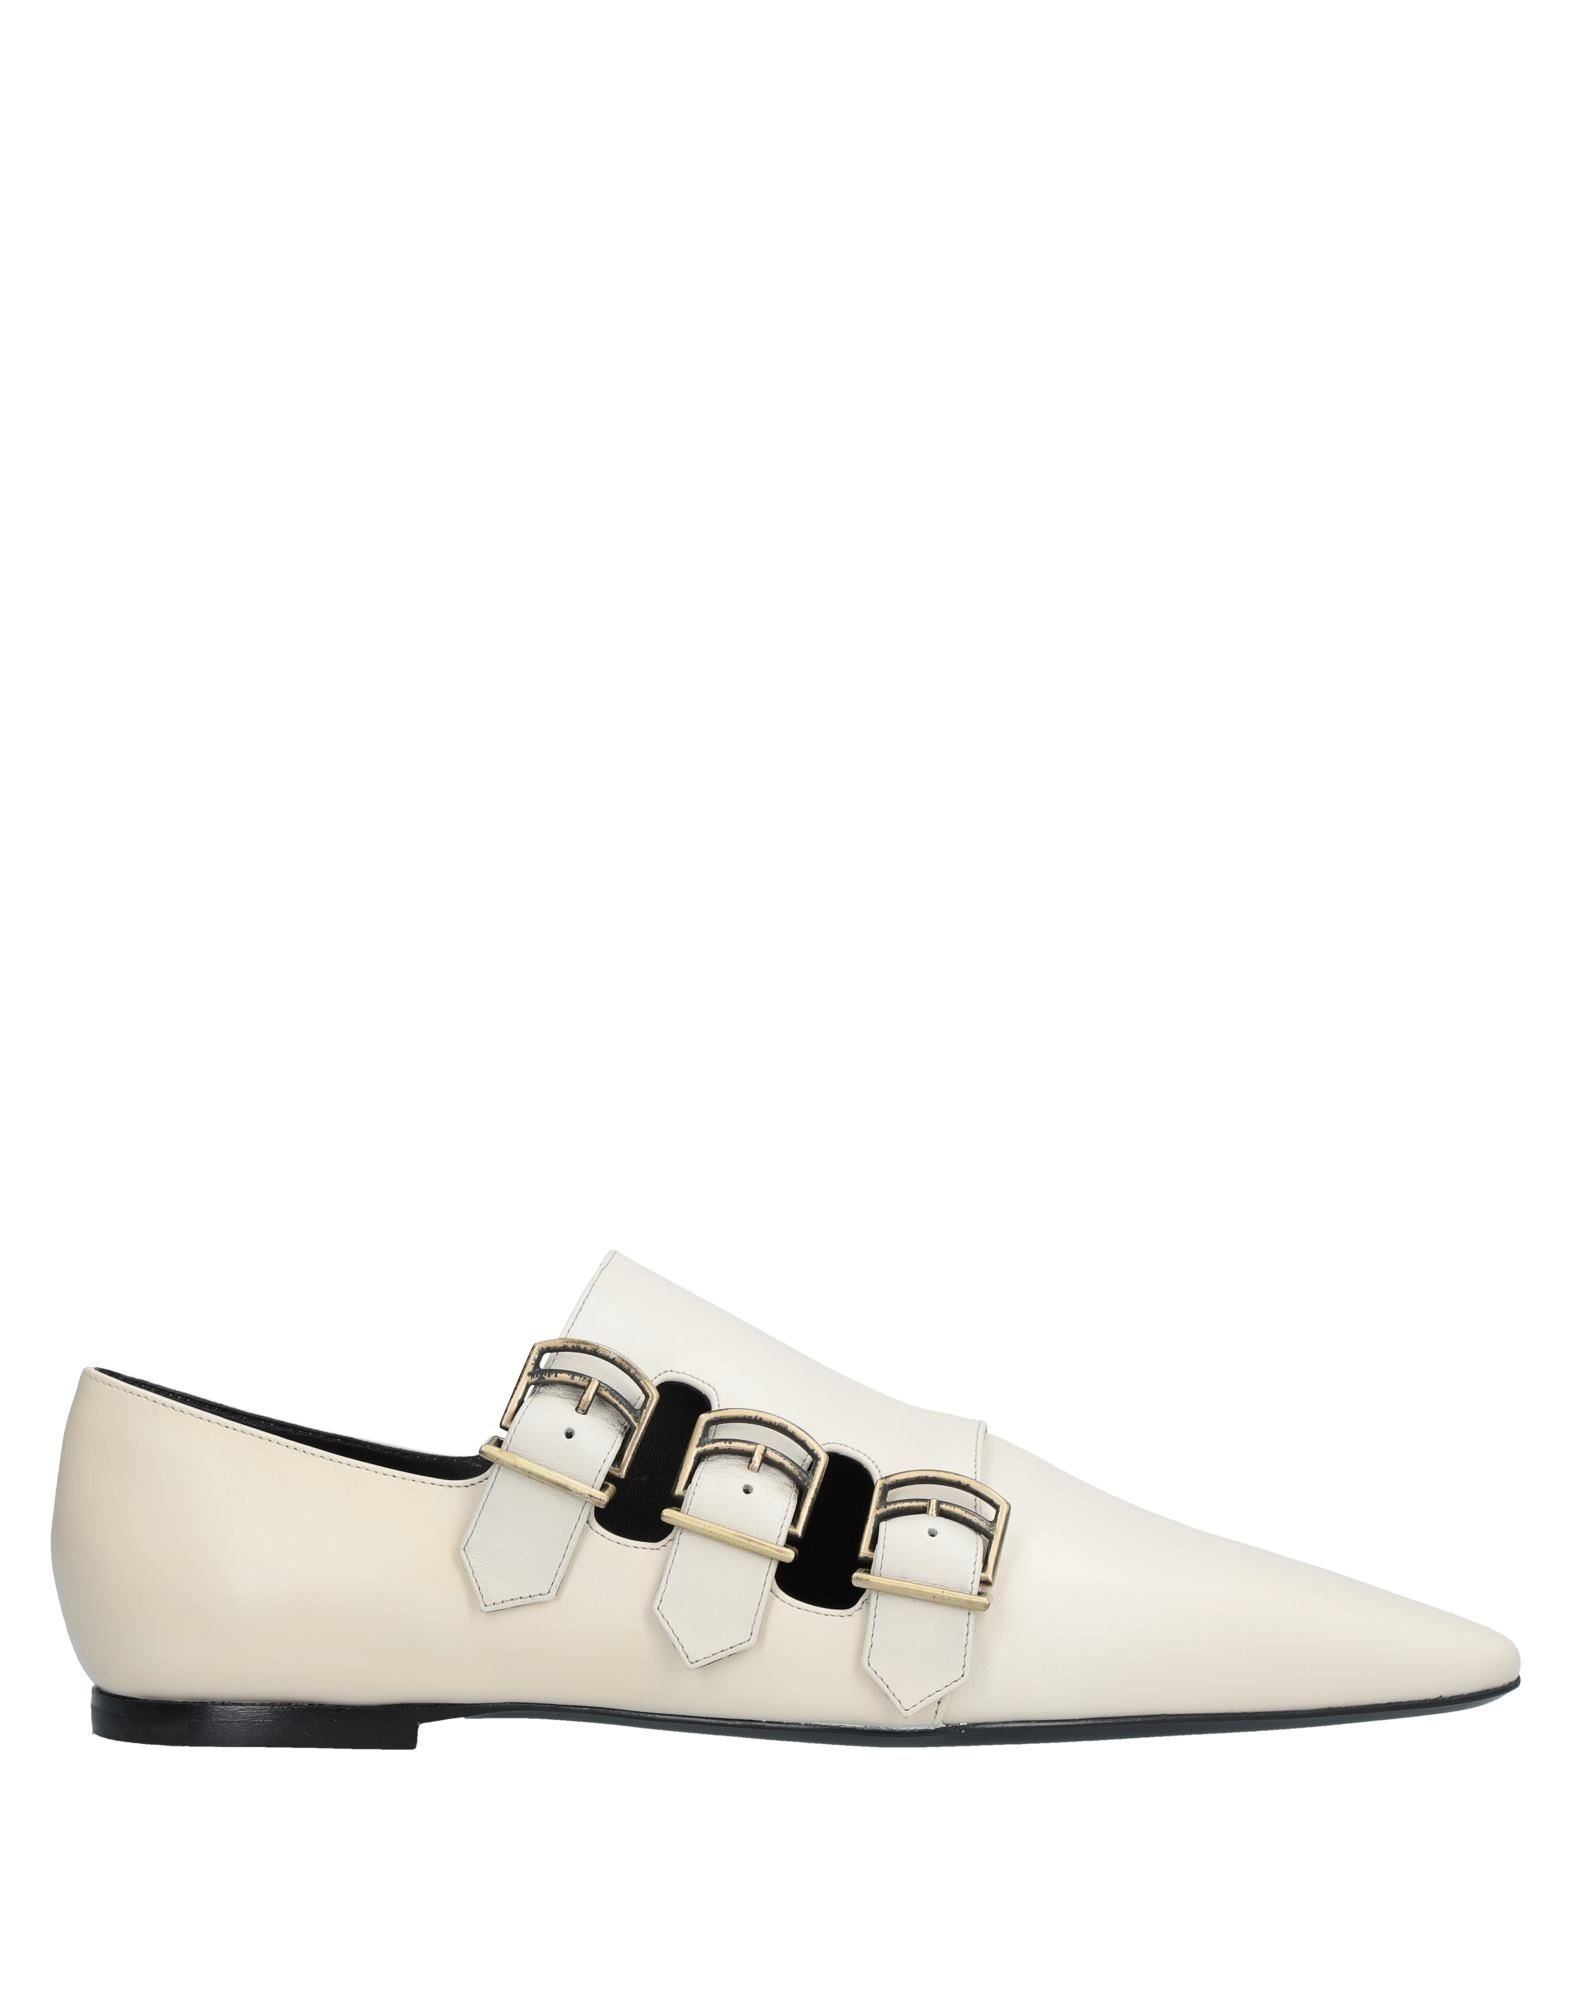 Jil Sander Loafers - Women Jil Sander Loafers online on 11542014MM  United Kingdom - 11542014MM on 6869cb